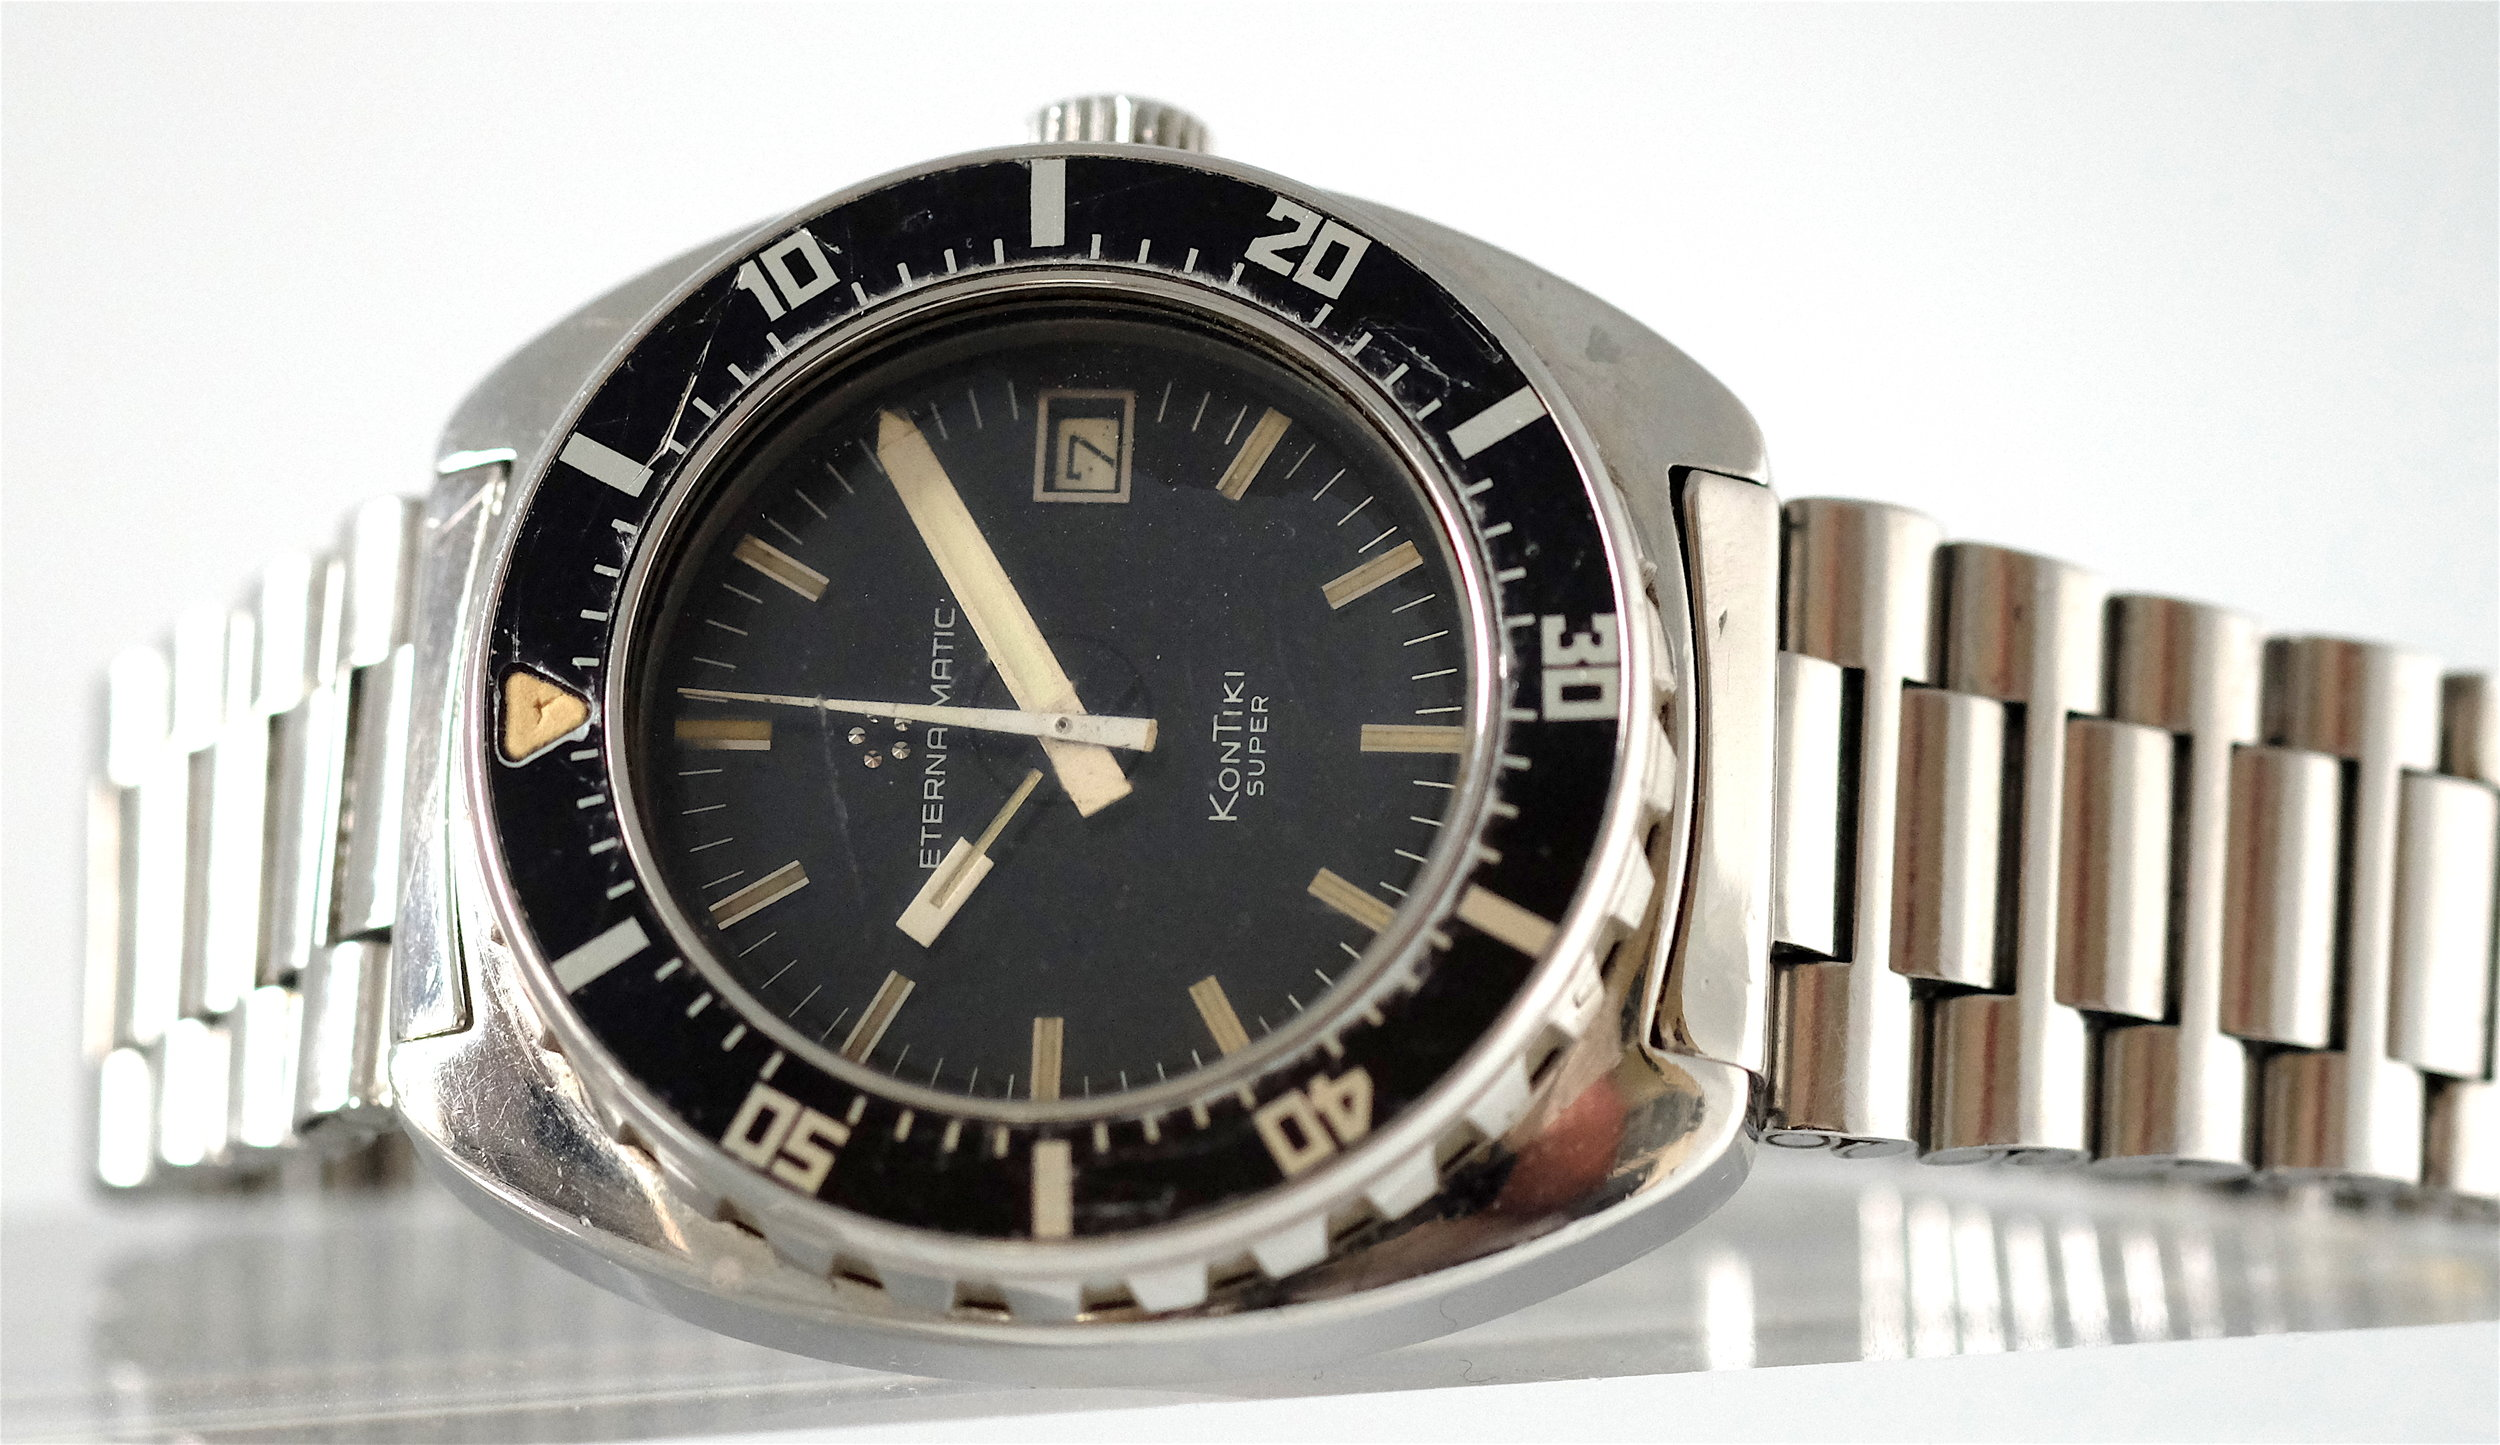 Eterna Kontiki Super Diver issued to IDF   SOLD